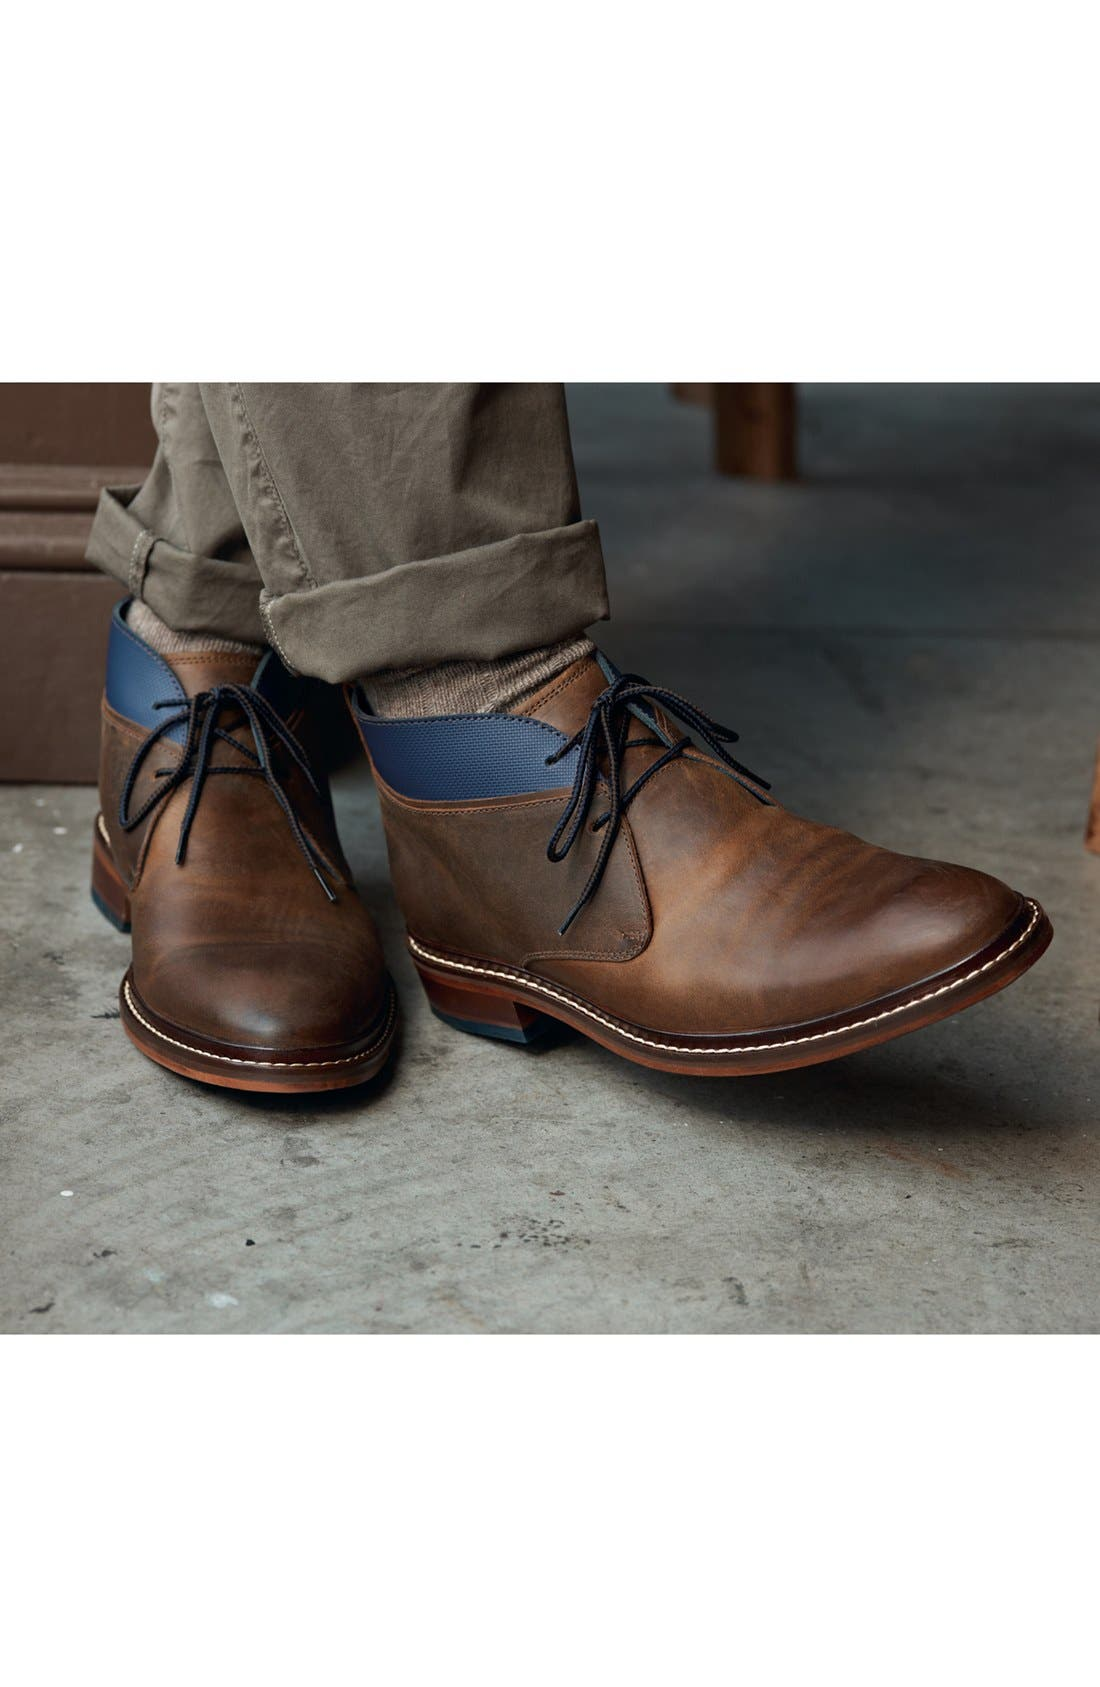 'Colton' Chukka Boot,                             Alternate thumbnail 7, color,                             COPPER/ PEACOAT LEATHER